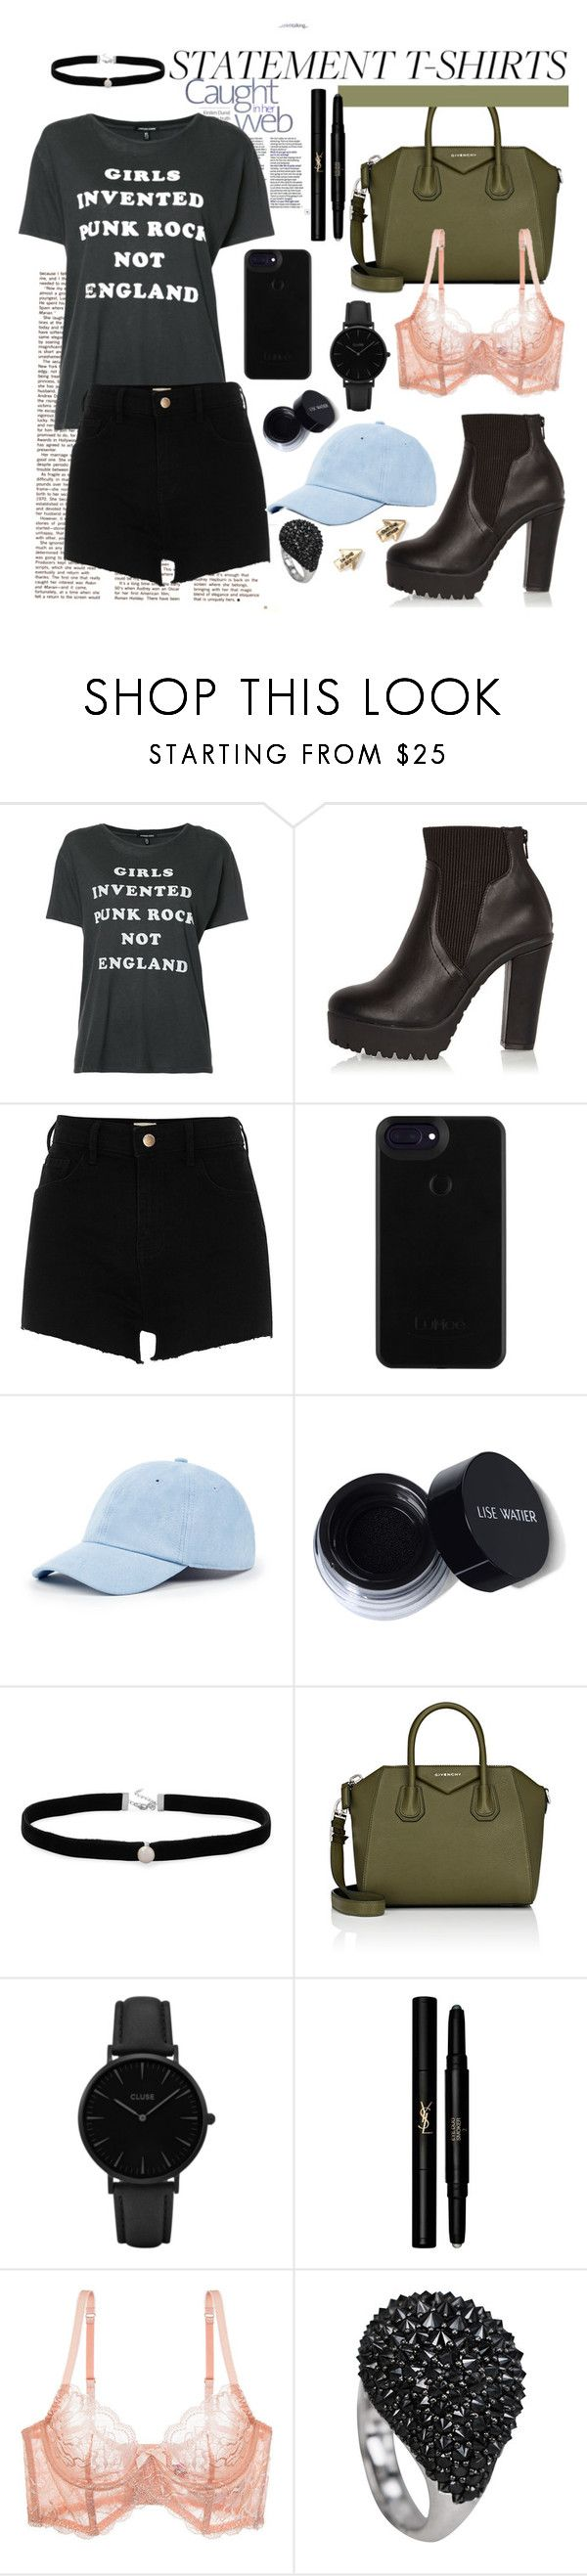 """""""Angsty   Statement Tshirts"""" by jessica-gonzatto ❤ liked on Polyvore featuring R13, River Island, Sole Society, Amanda Rose Collection, Givenchy, CLUSE, Yves Saint Laurent, L'Agent By Agent Provocateur and Aéropostale"""